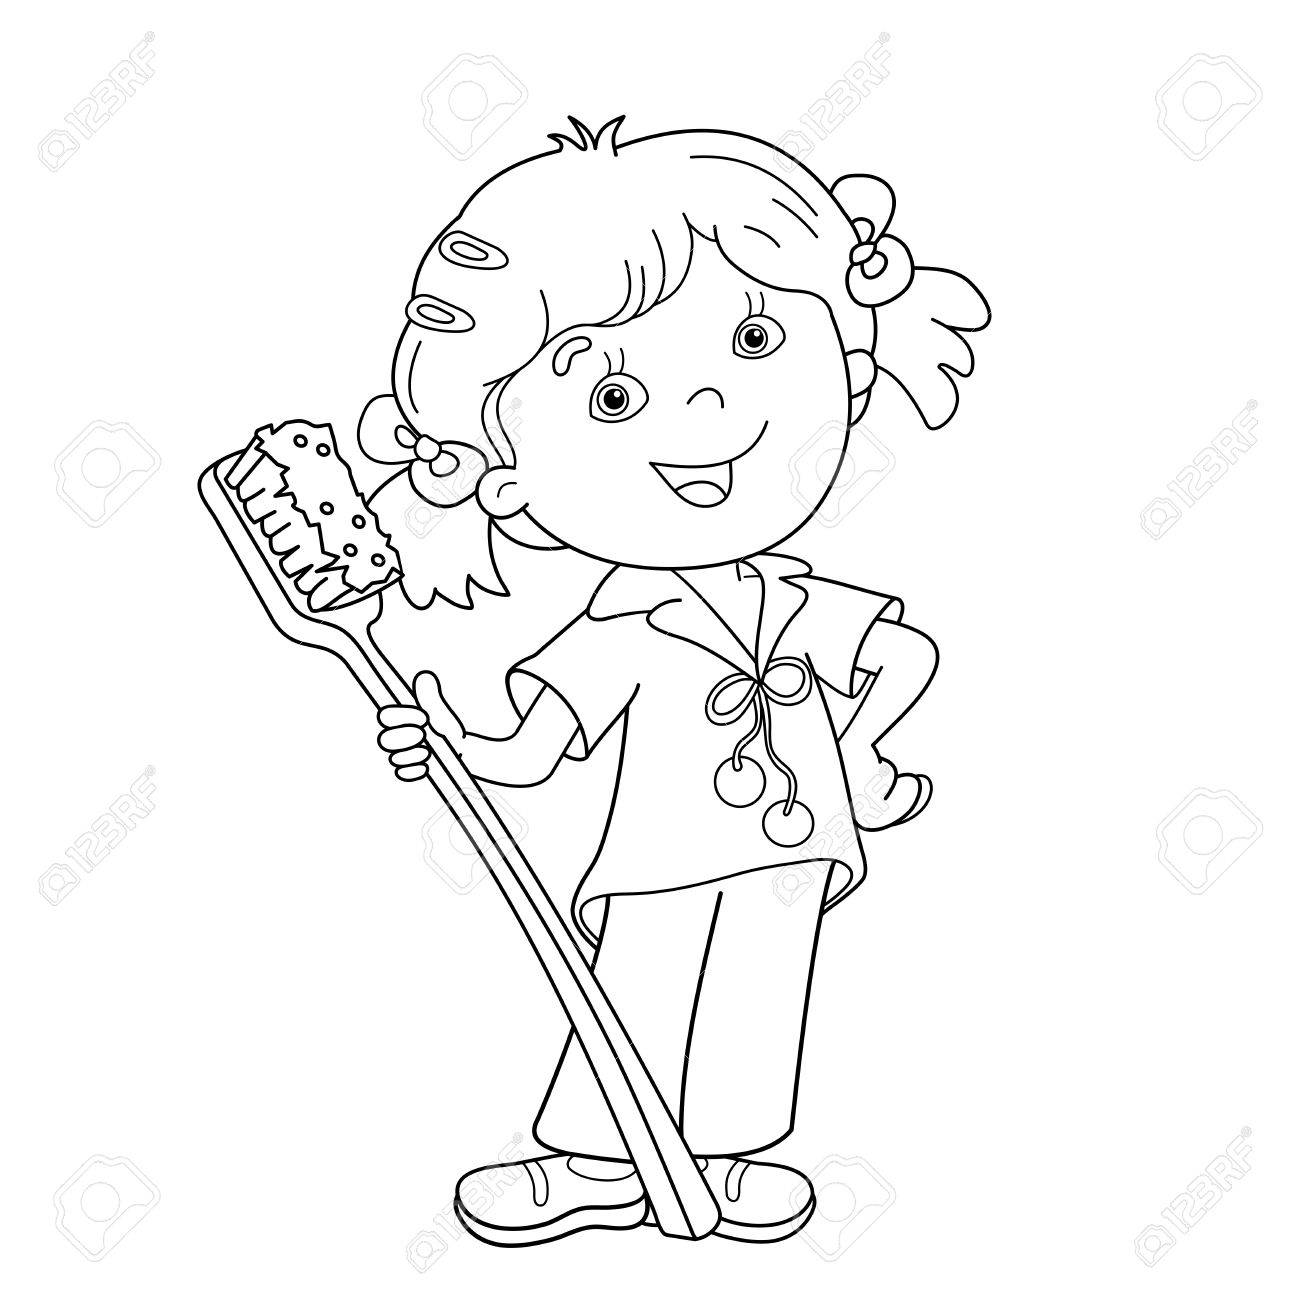 Coloring Page Outline Of Cartoon Girl With Toothbrush Coloring